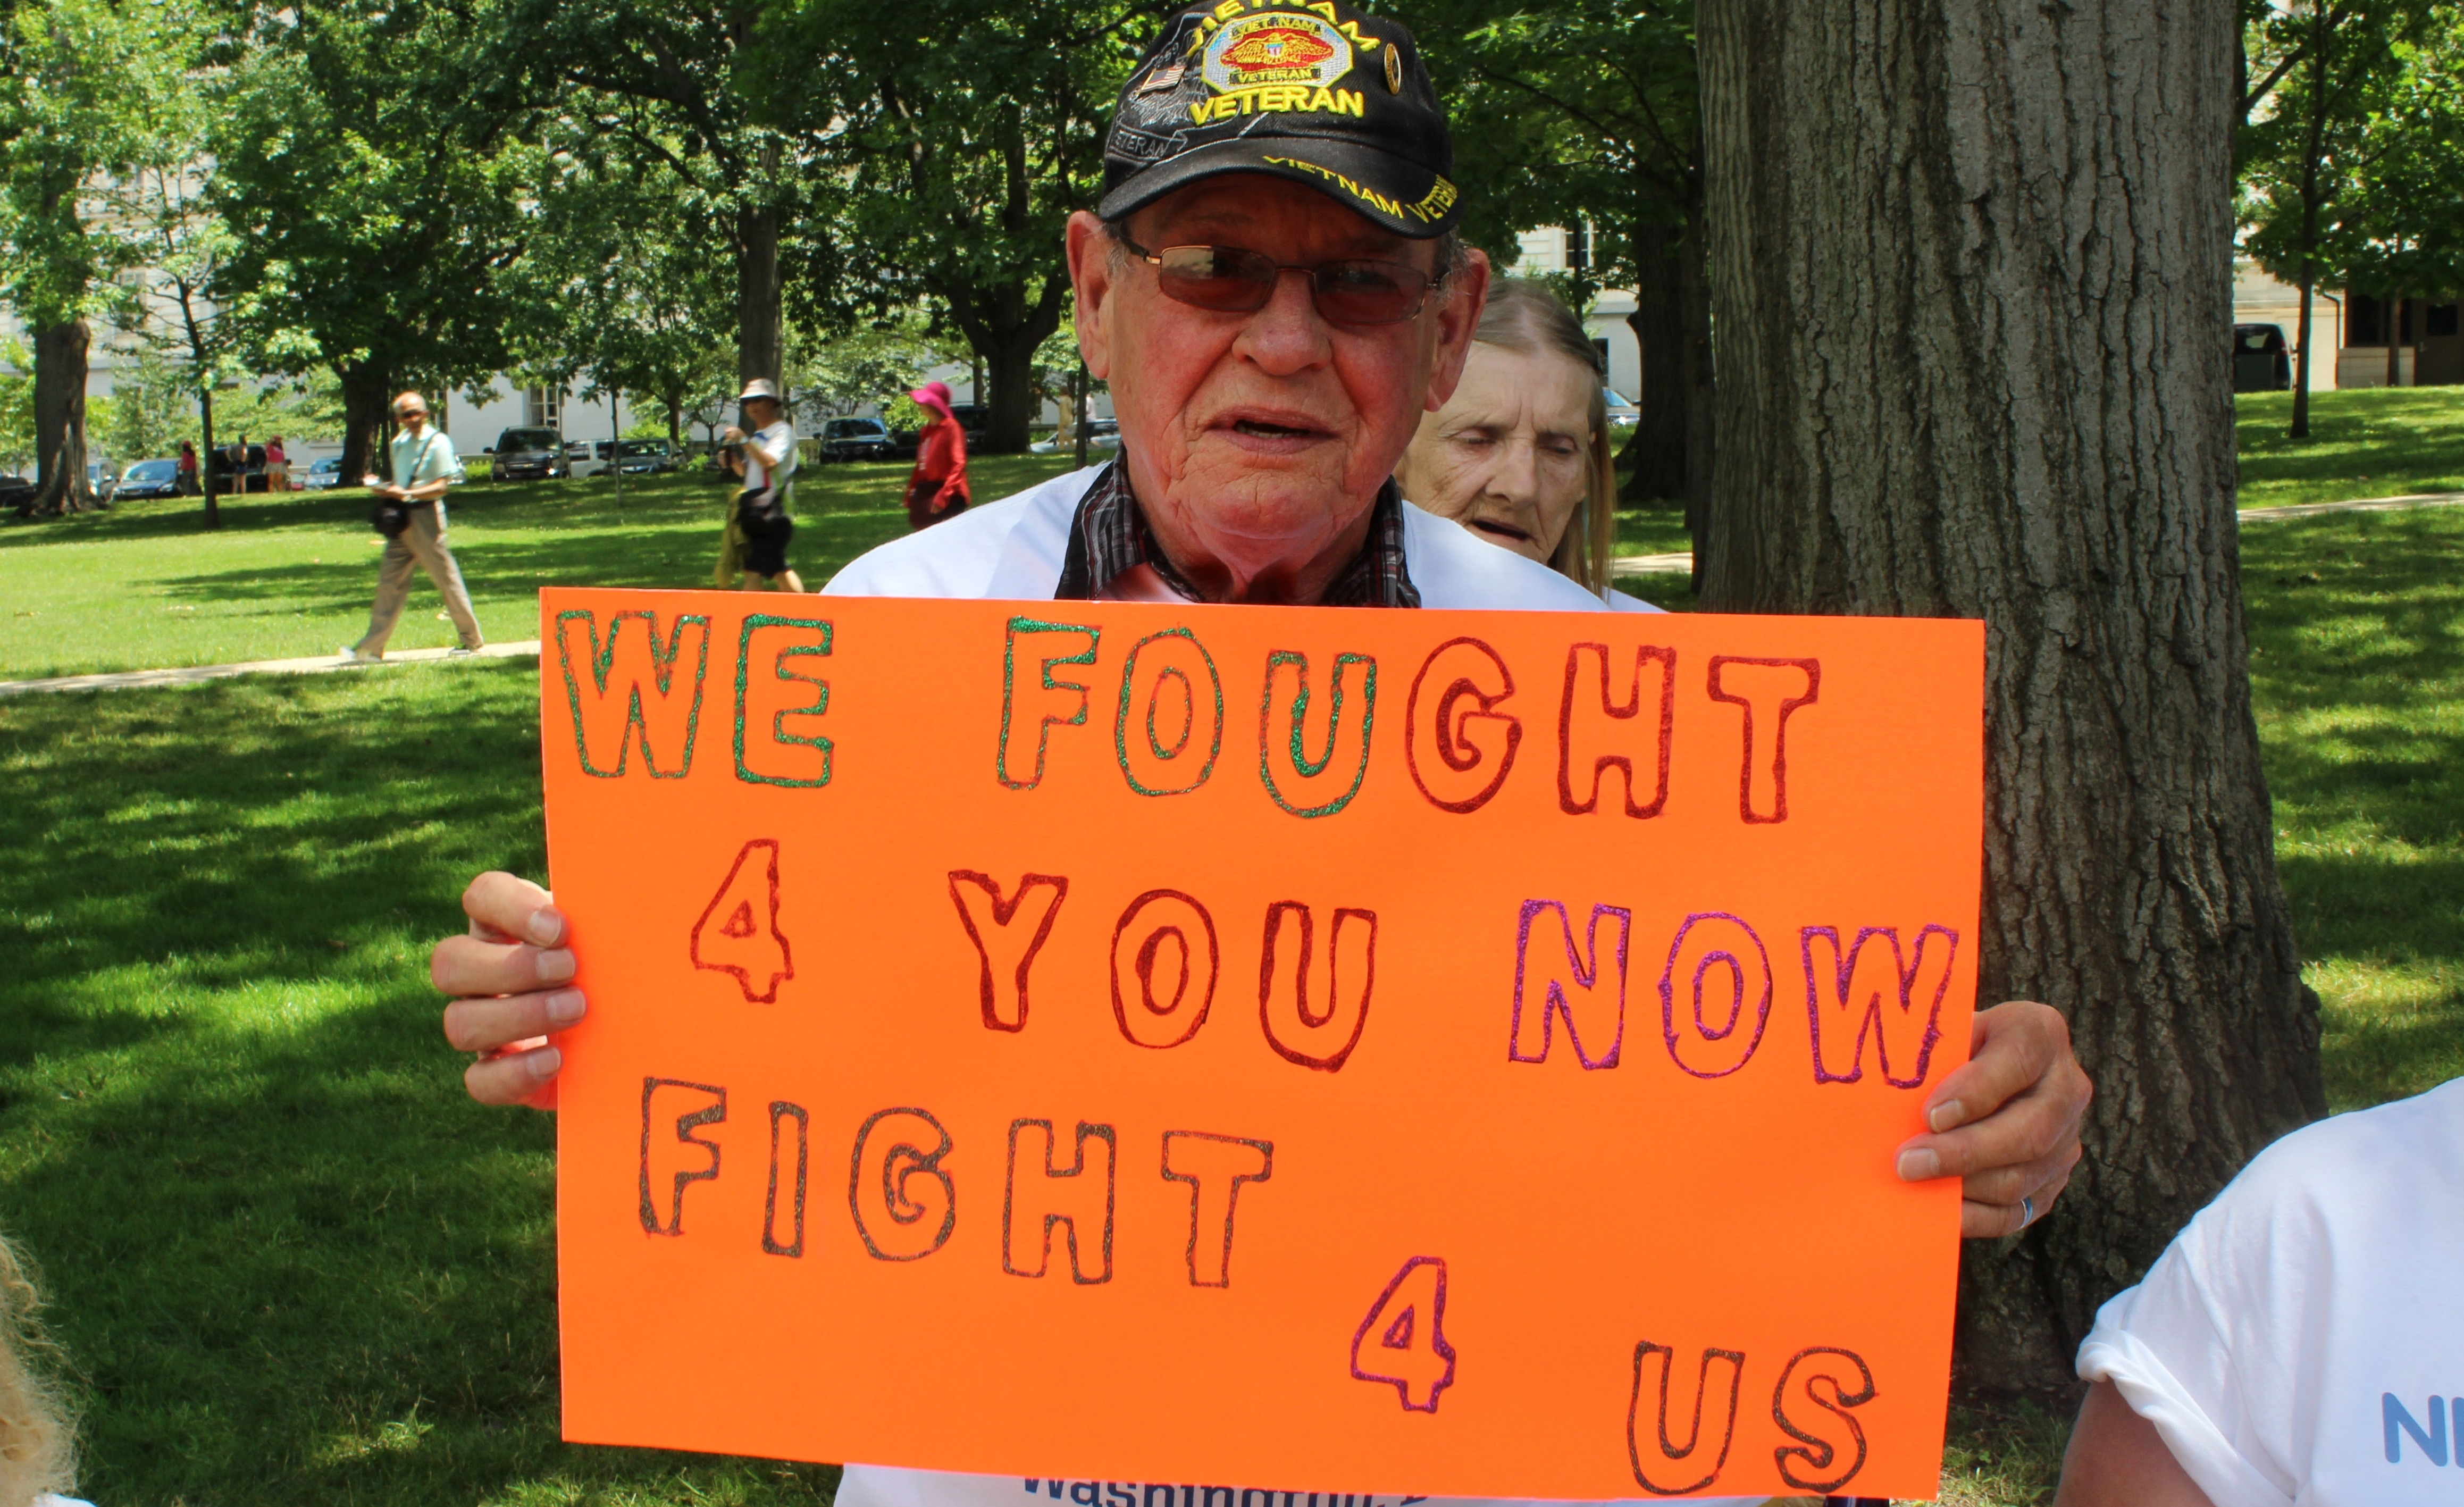 A veteran protests funding cuts to a federal affordable housing program that he relies on to live in a safe and healthy home.